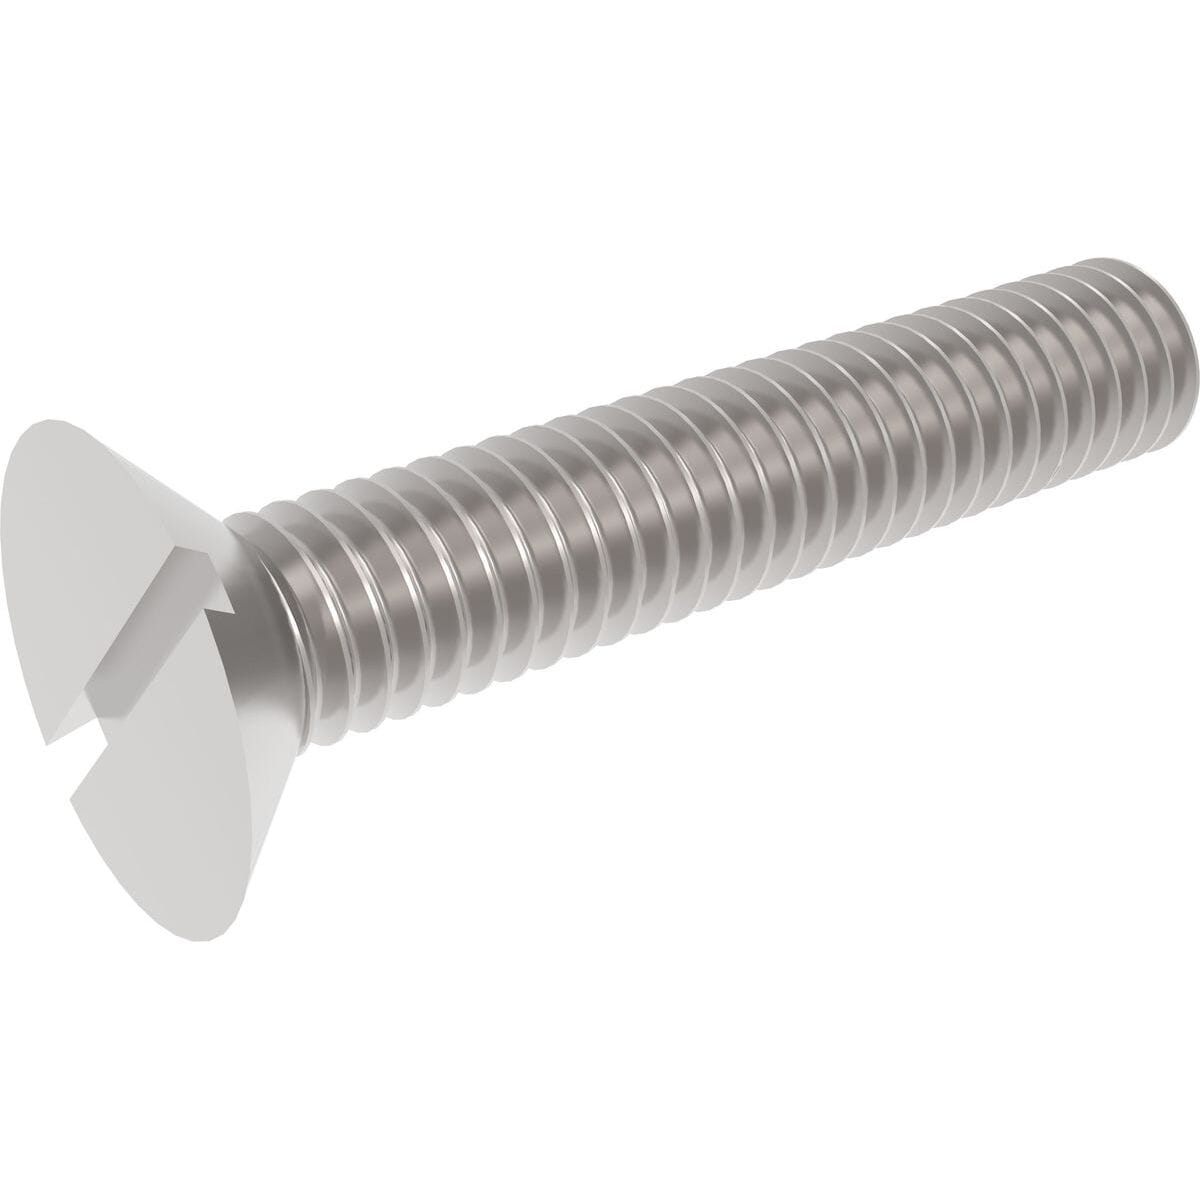 M5 x 70mm Slotted Countersunk Screws (DIN 963) - Stainless Steel (A2)